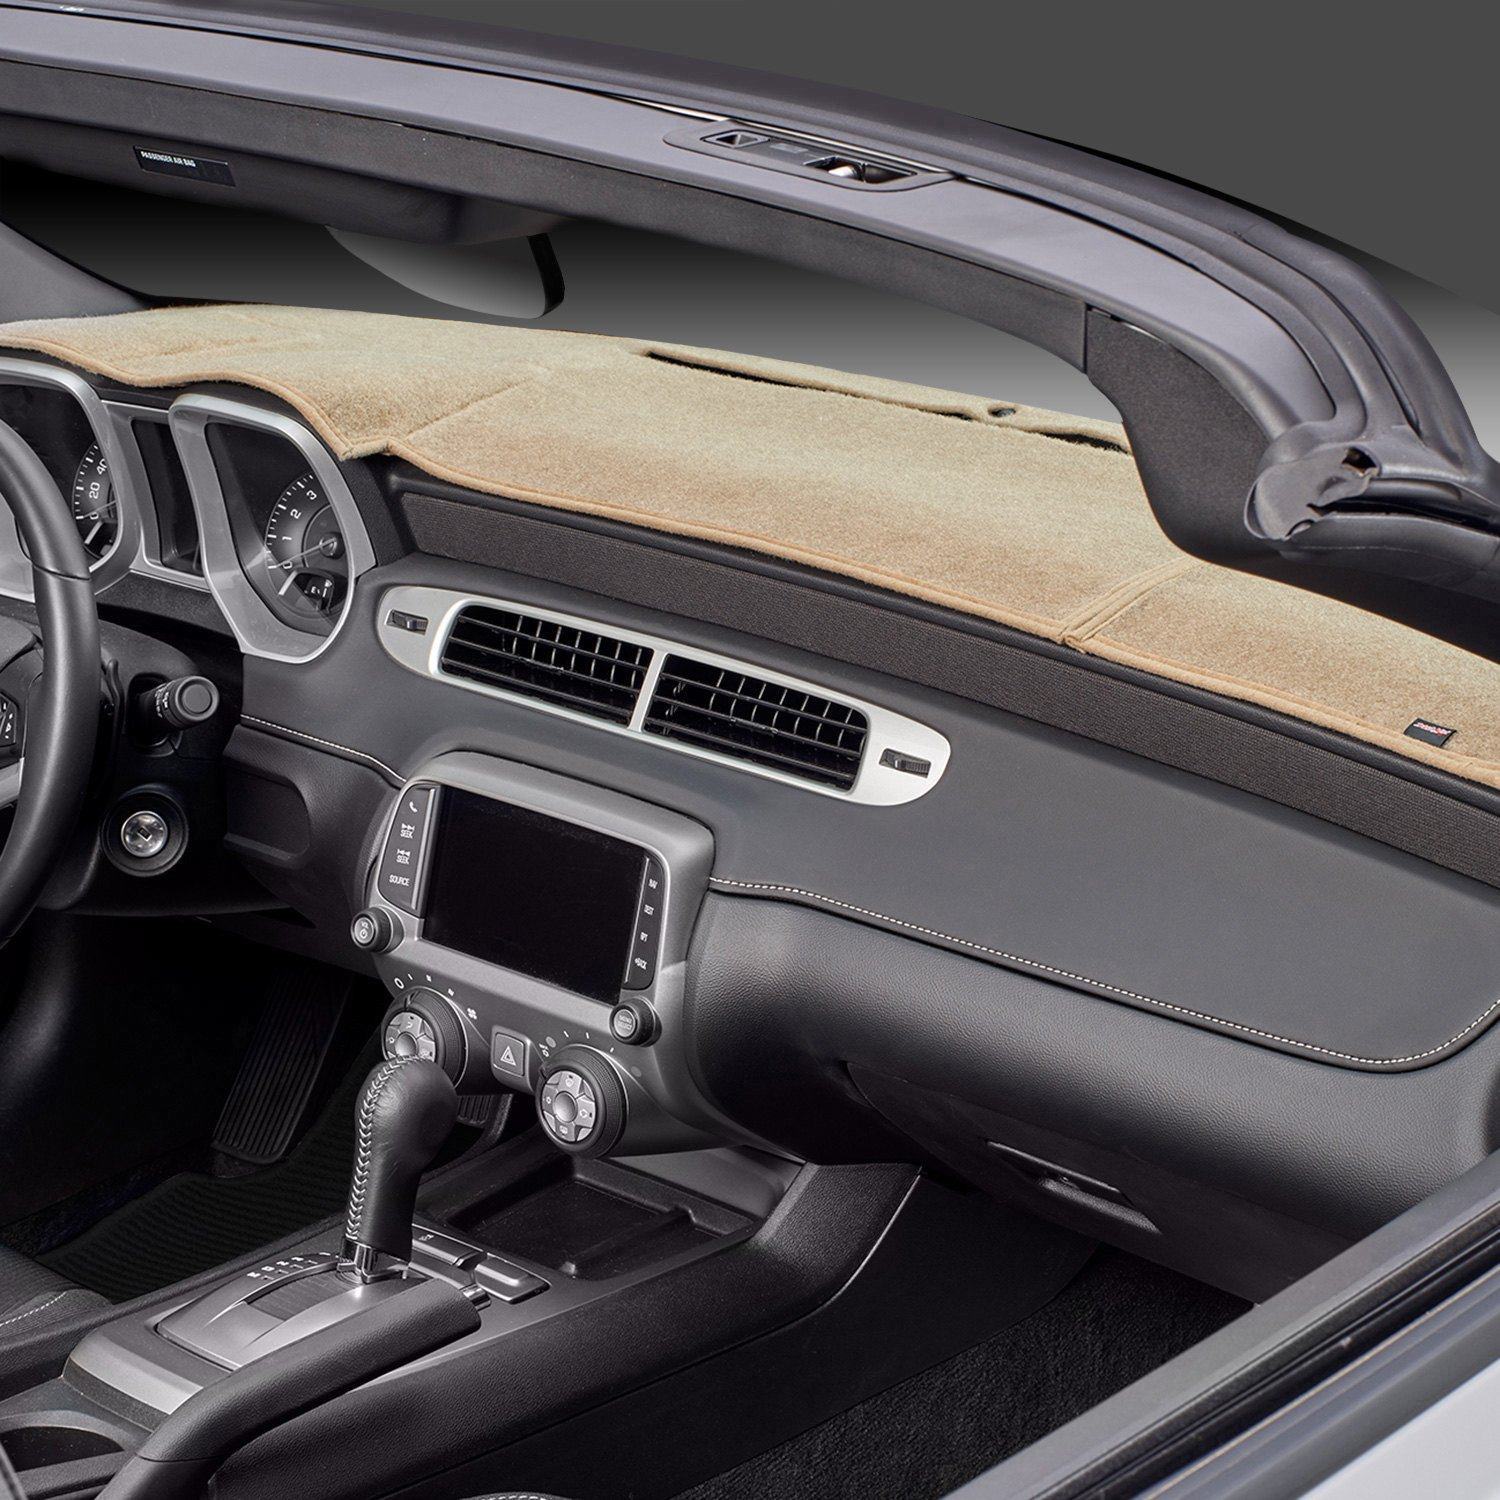 buy cheap DashMat® 1840-00-23 - Original Beige Dash Cover for 2015 RAM 1500 TRUCK Ebay & Amazon